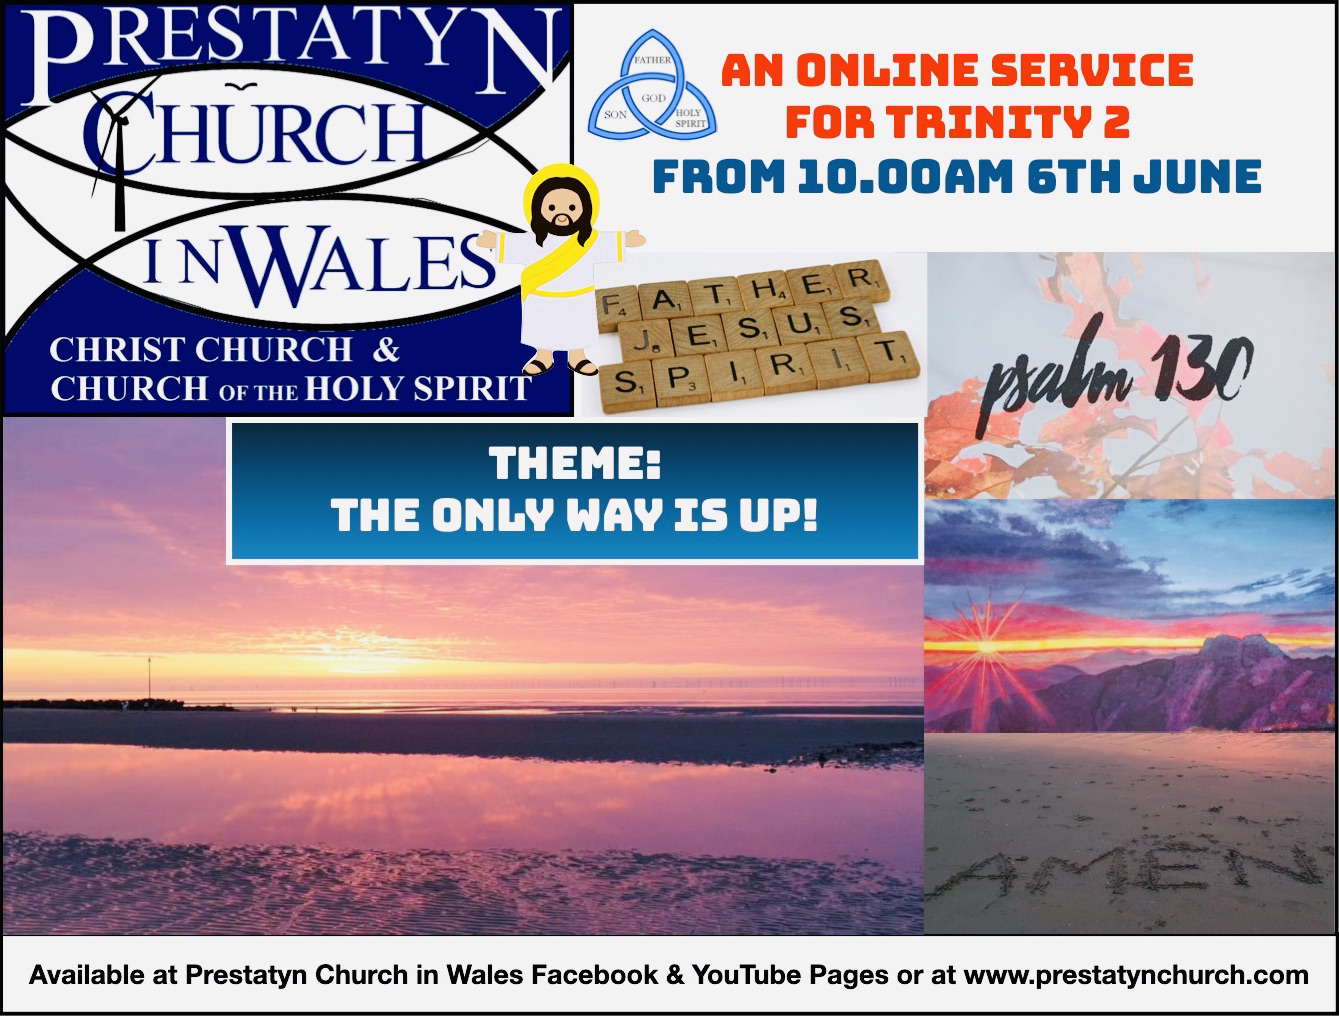 """Image containing text. Text Reads: """"Prestatyn Church In Wales. Christ Church & Church of the Holy Spirit."""" """"An Online Service For Trinity 2. From 10.00 AM 6th June."""" """"Theme: The Only Way Is Up!"""" """"Available at Prestatyn Church In Wales Facebook  & Youtube Pages and at www.prestatynchurch.com"""""""